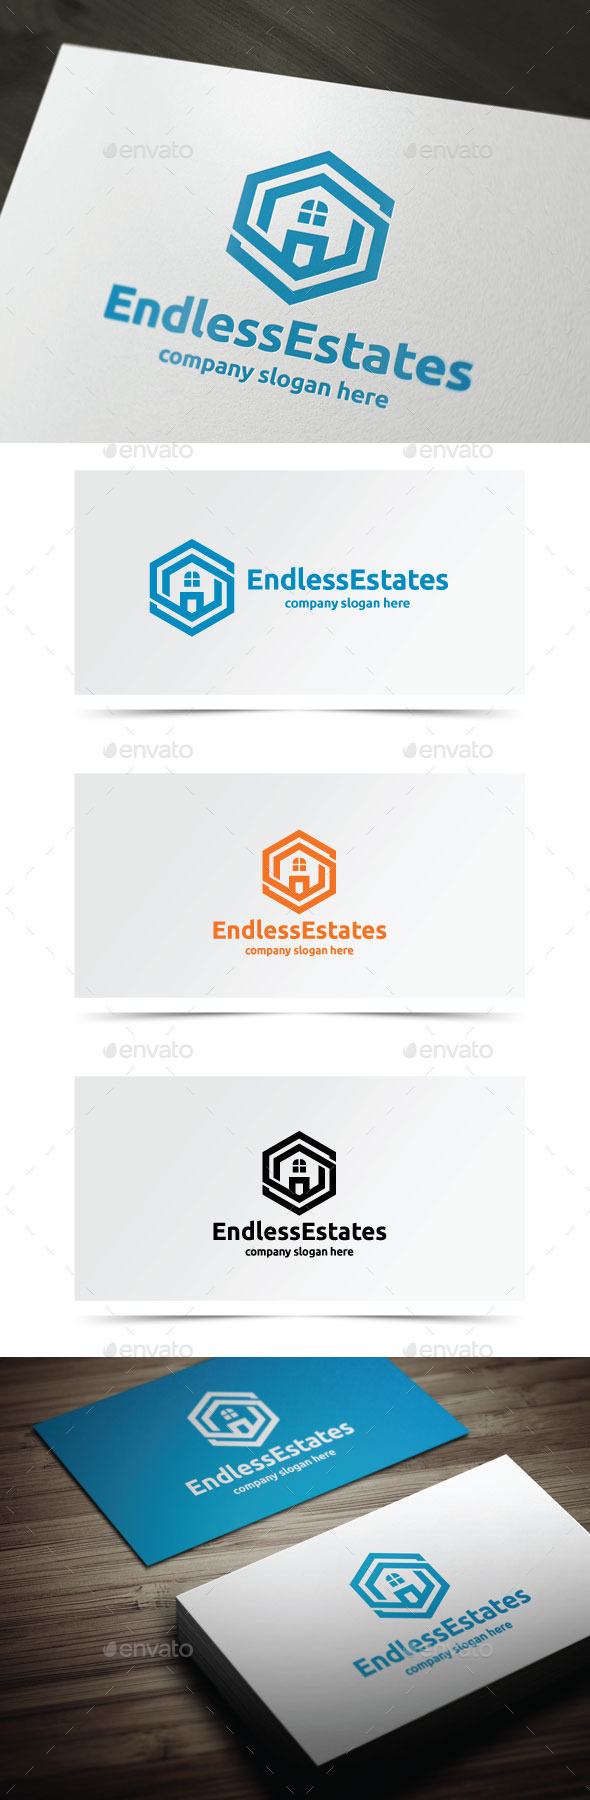 GraphicRiver Endless Estates 10010304